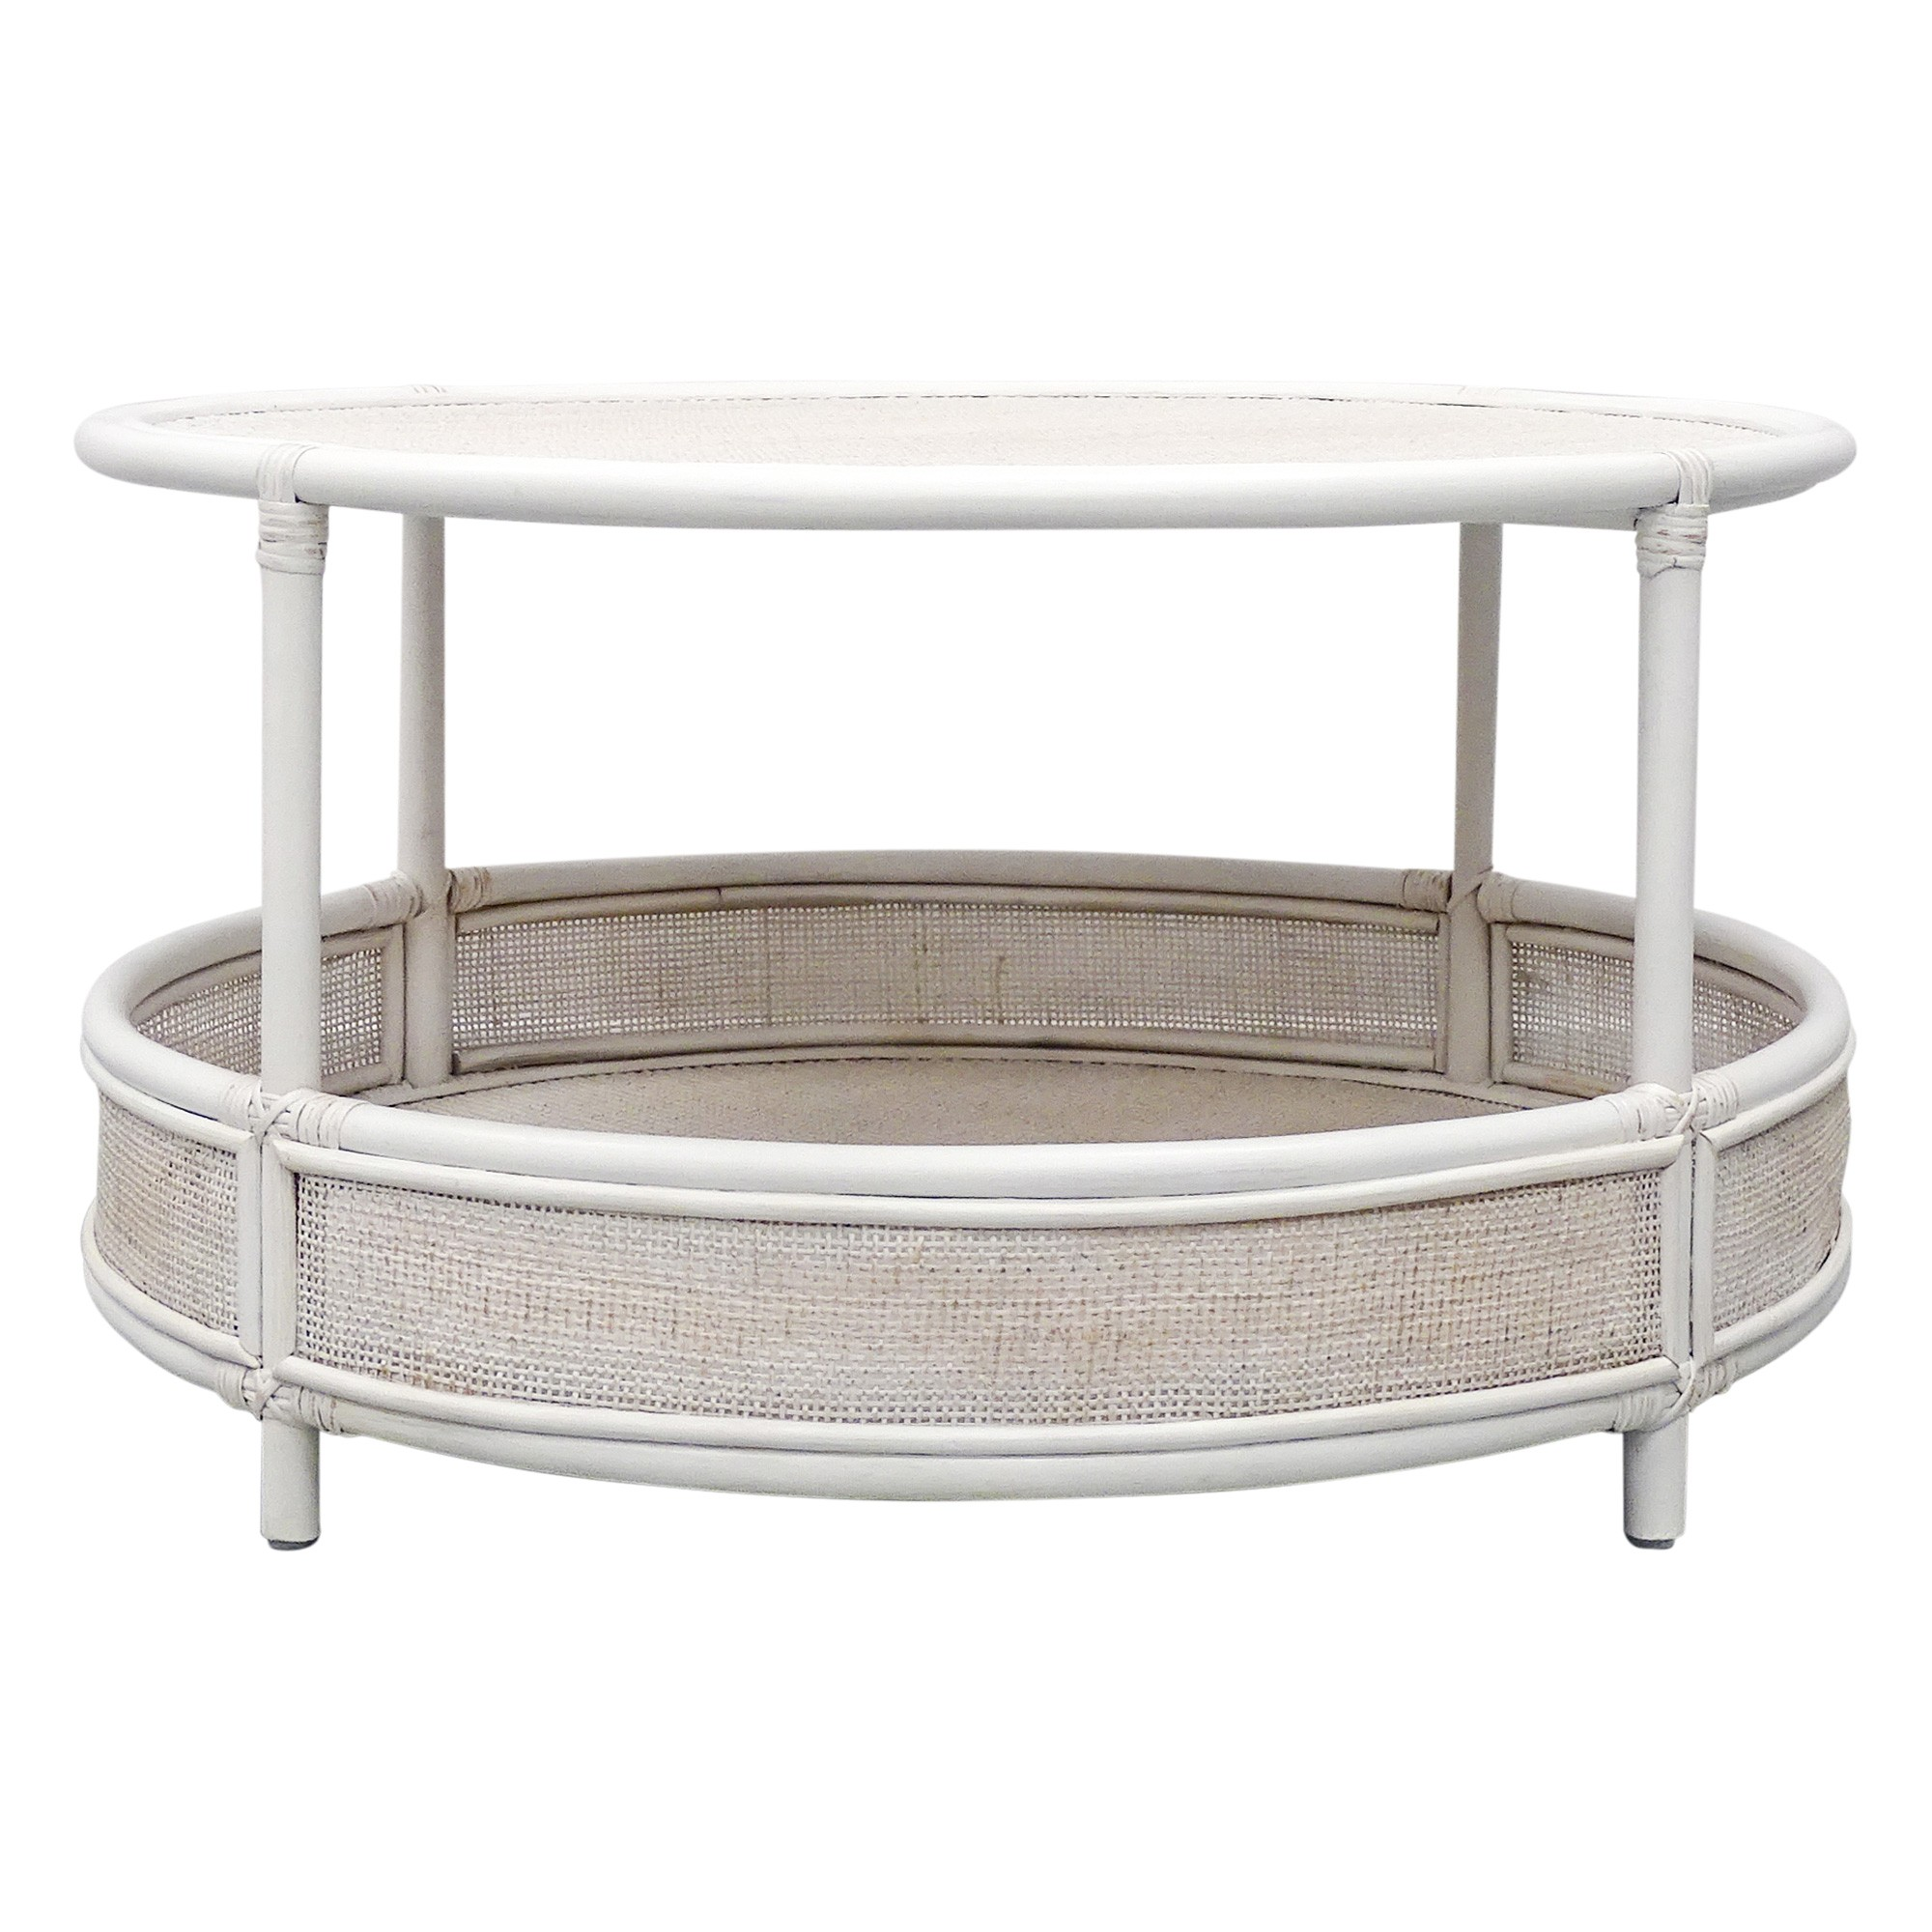 Carson Bamboo Rattan Round Coffee Table, 90cm, White